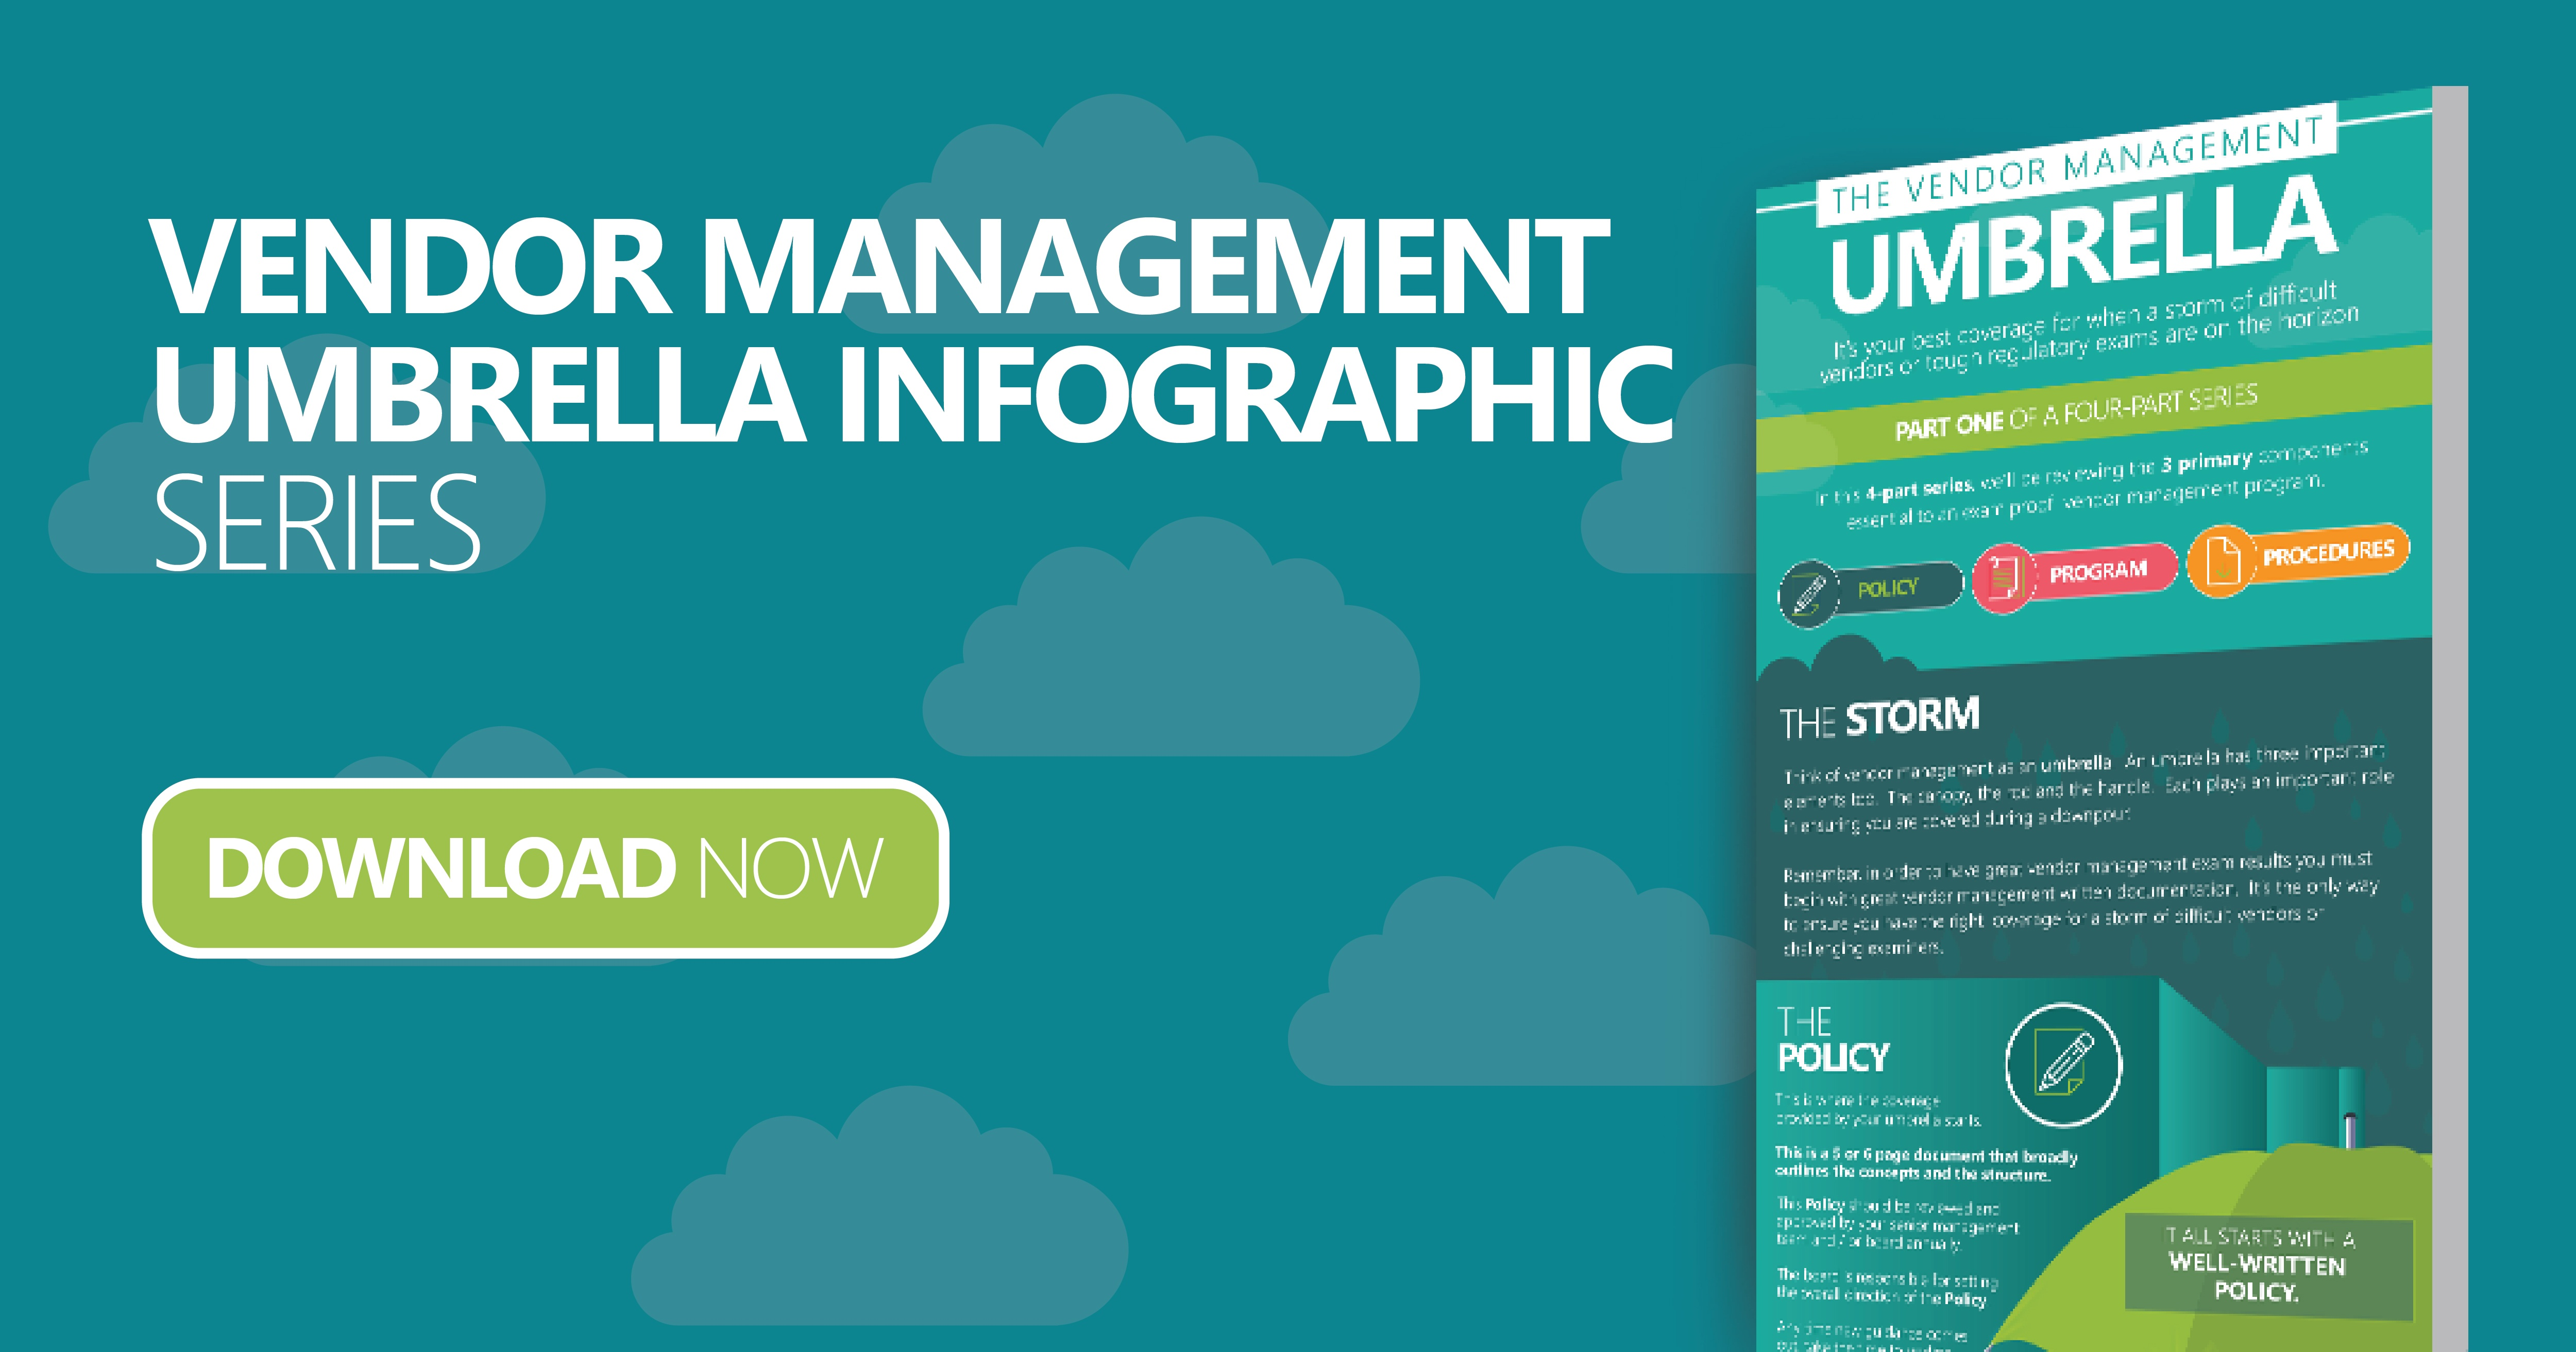 Vendor Management Policy Program Procedures Umbrella Infographic Series